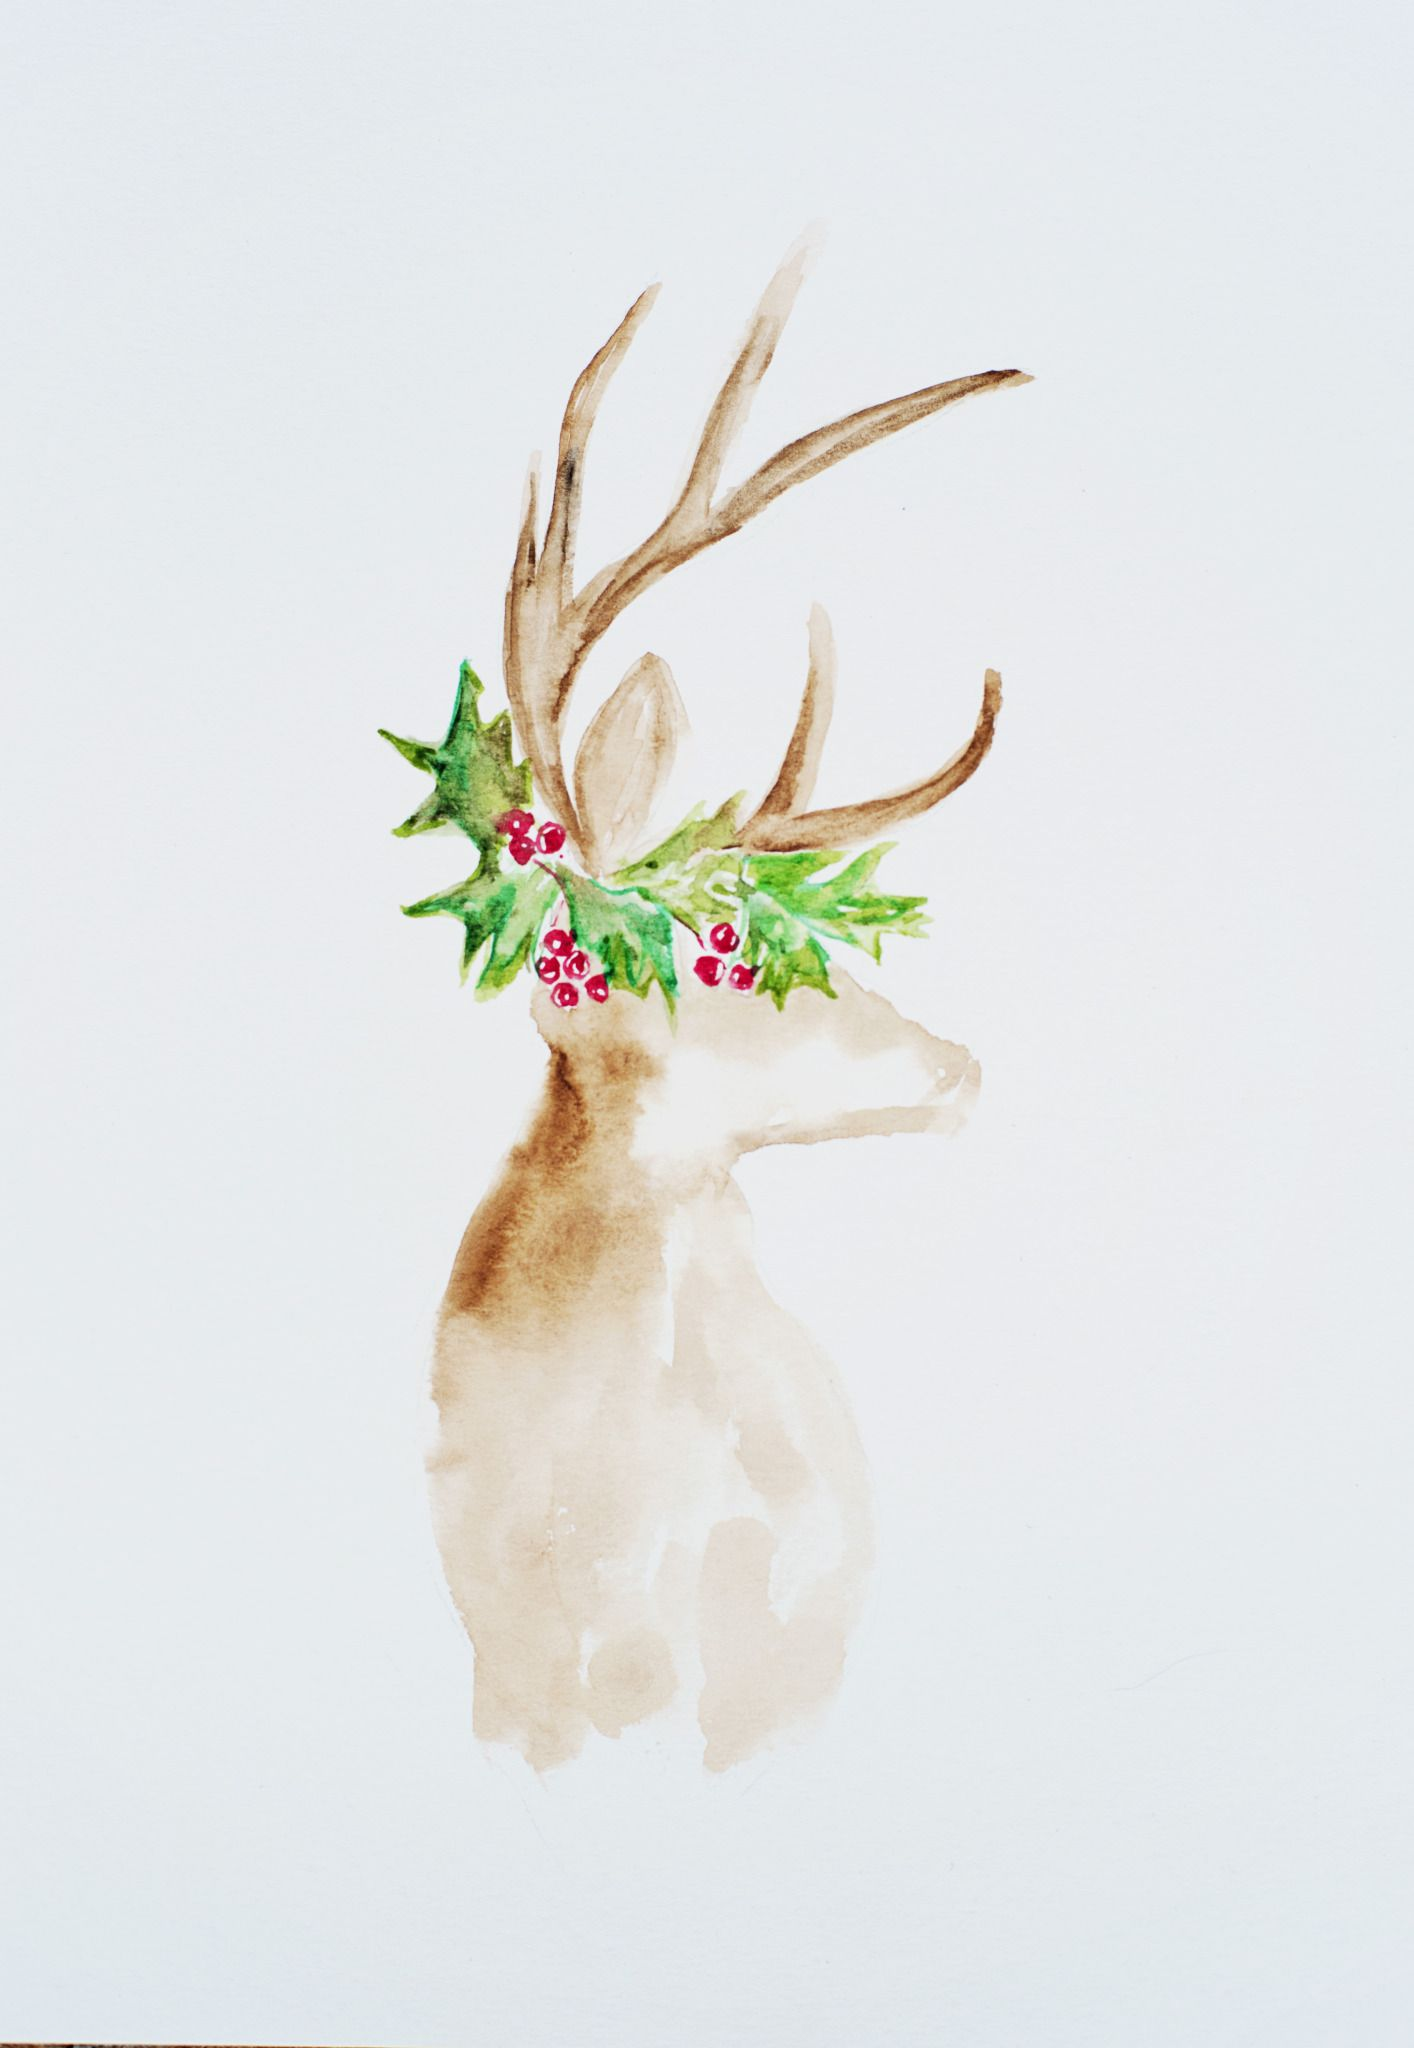 Pin by Teddee Grace on Christmas | Pinterest | Watercolor ...